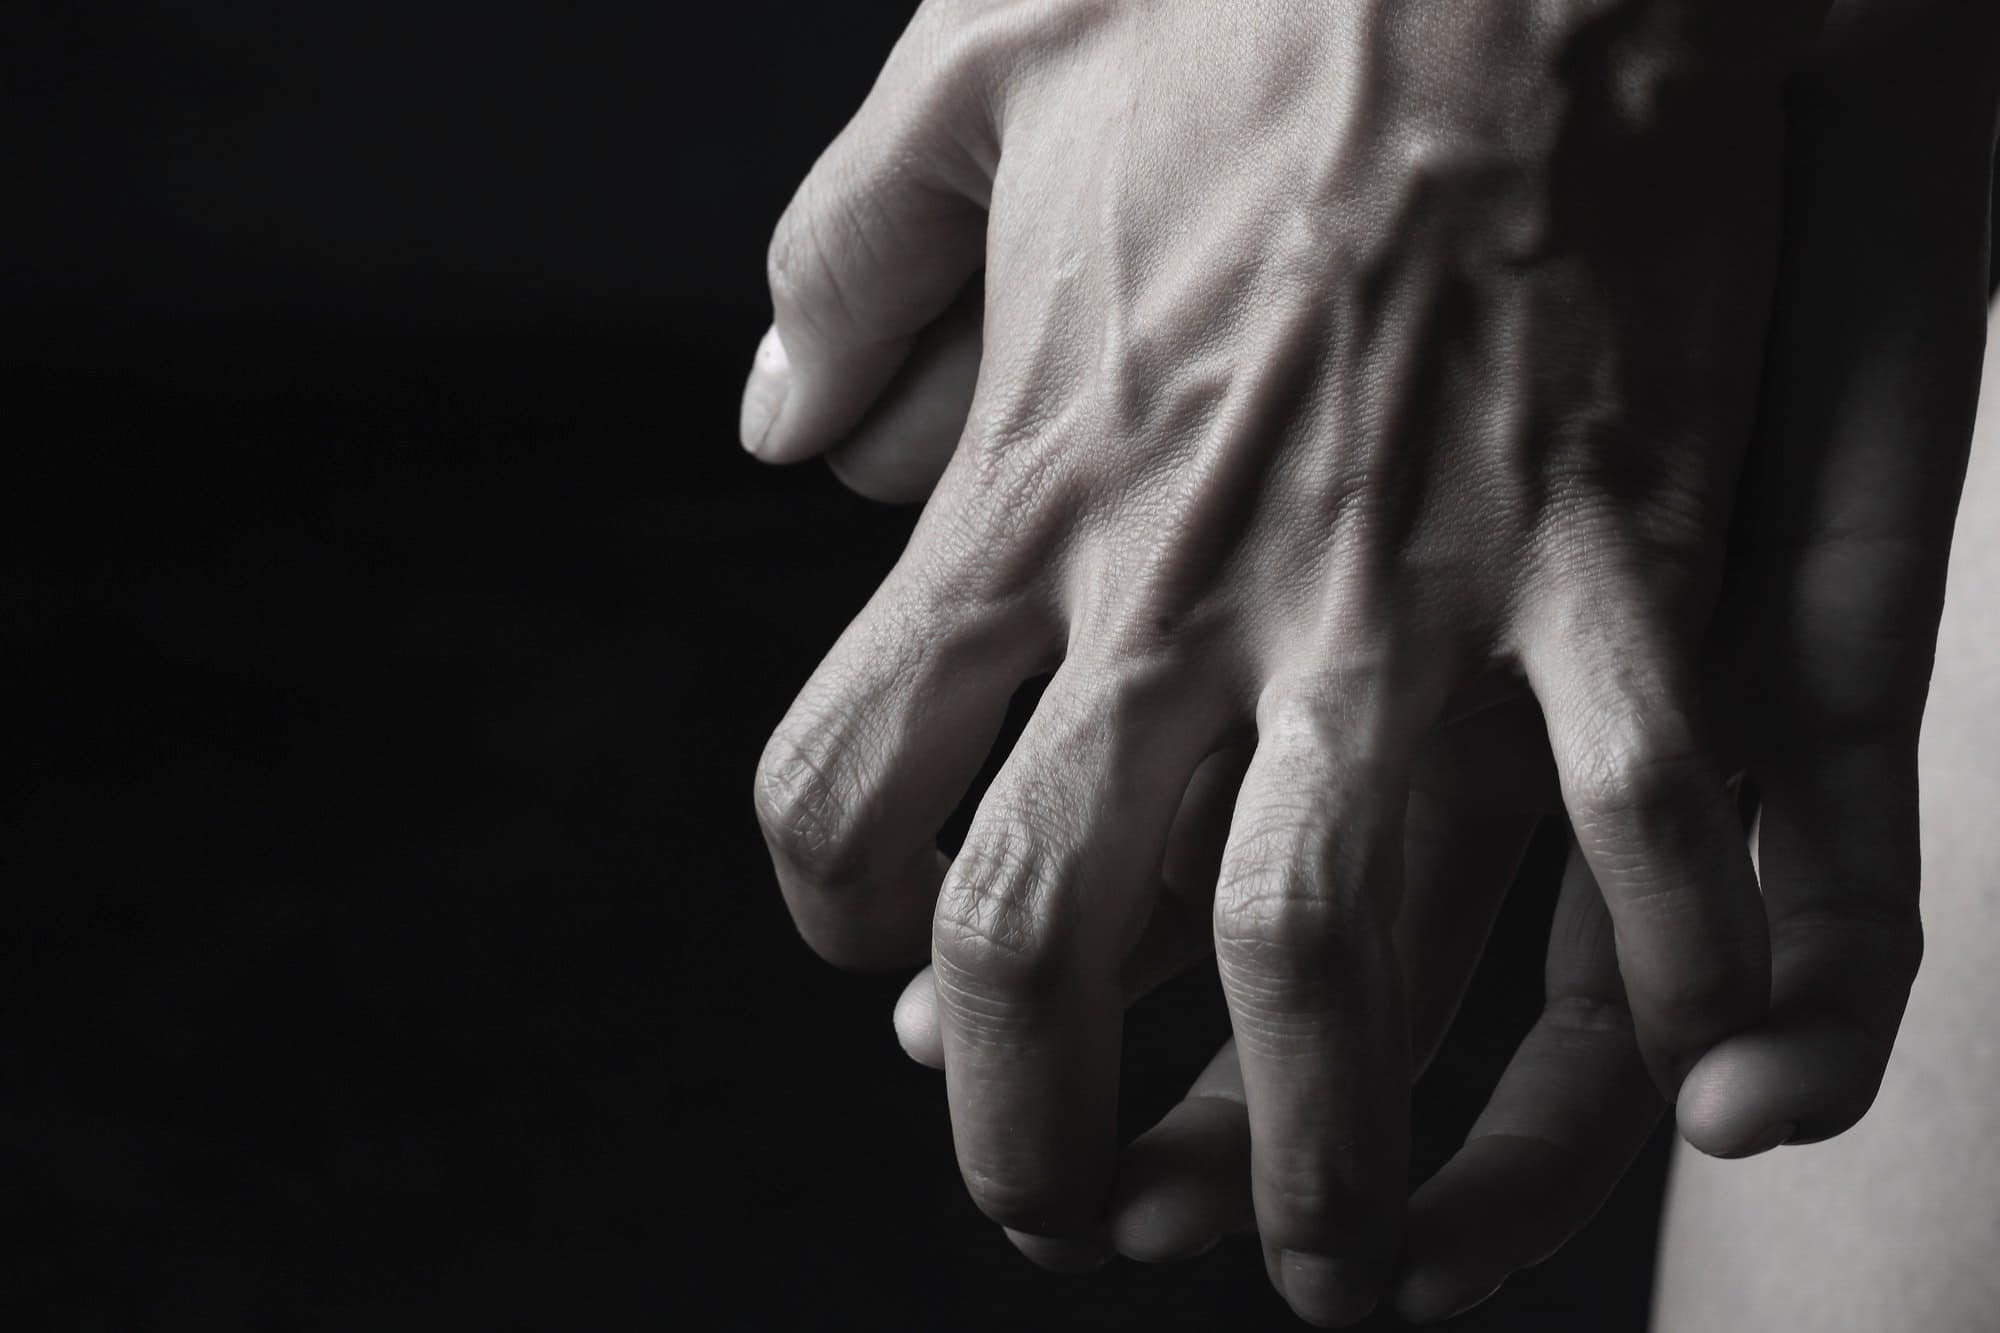 thick veins in hands